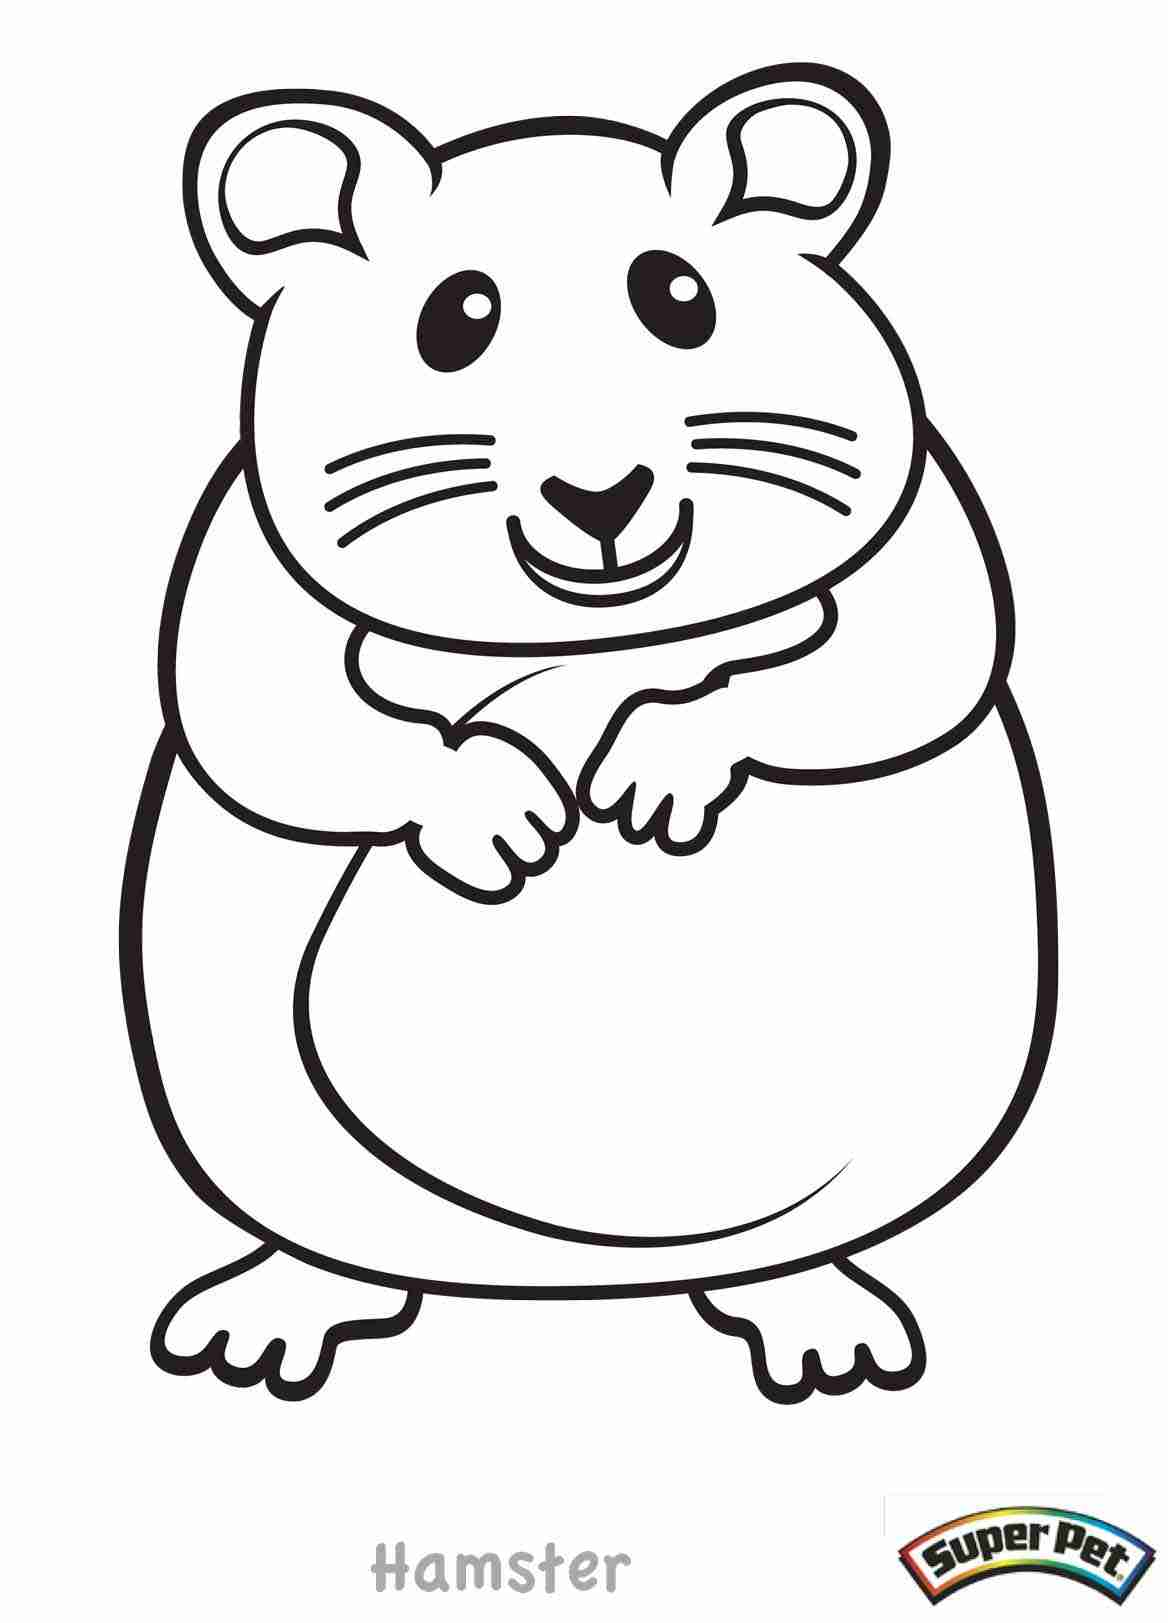 1168x1623 Top Free Printable Hamster Coloring Pages Online School Pet